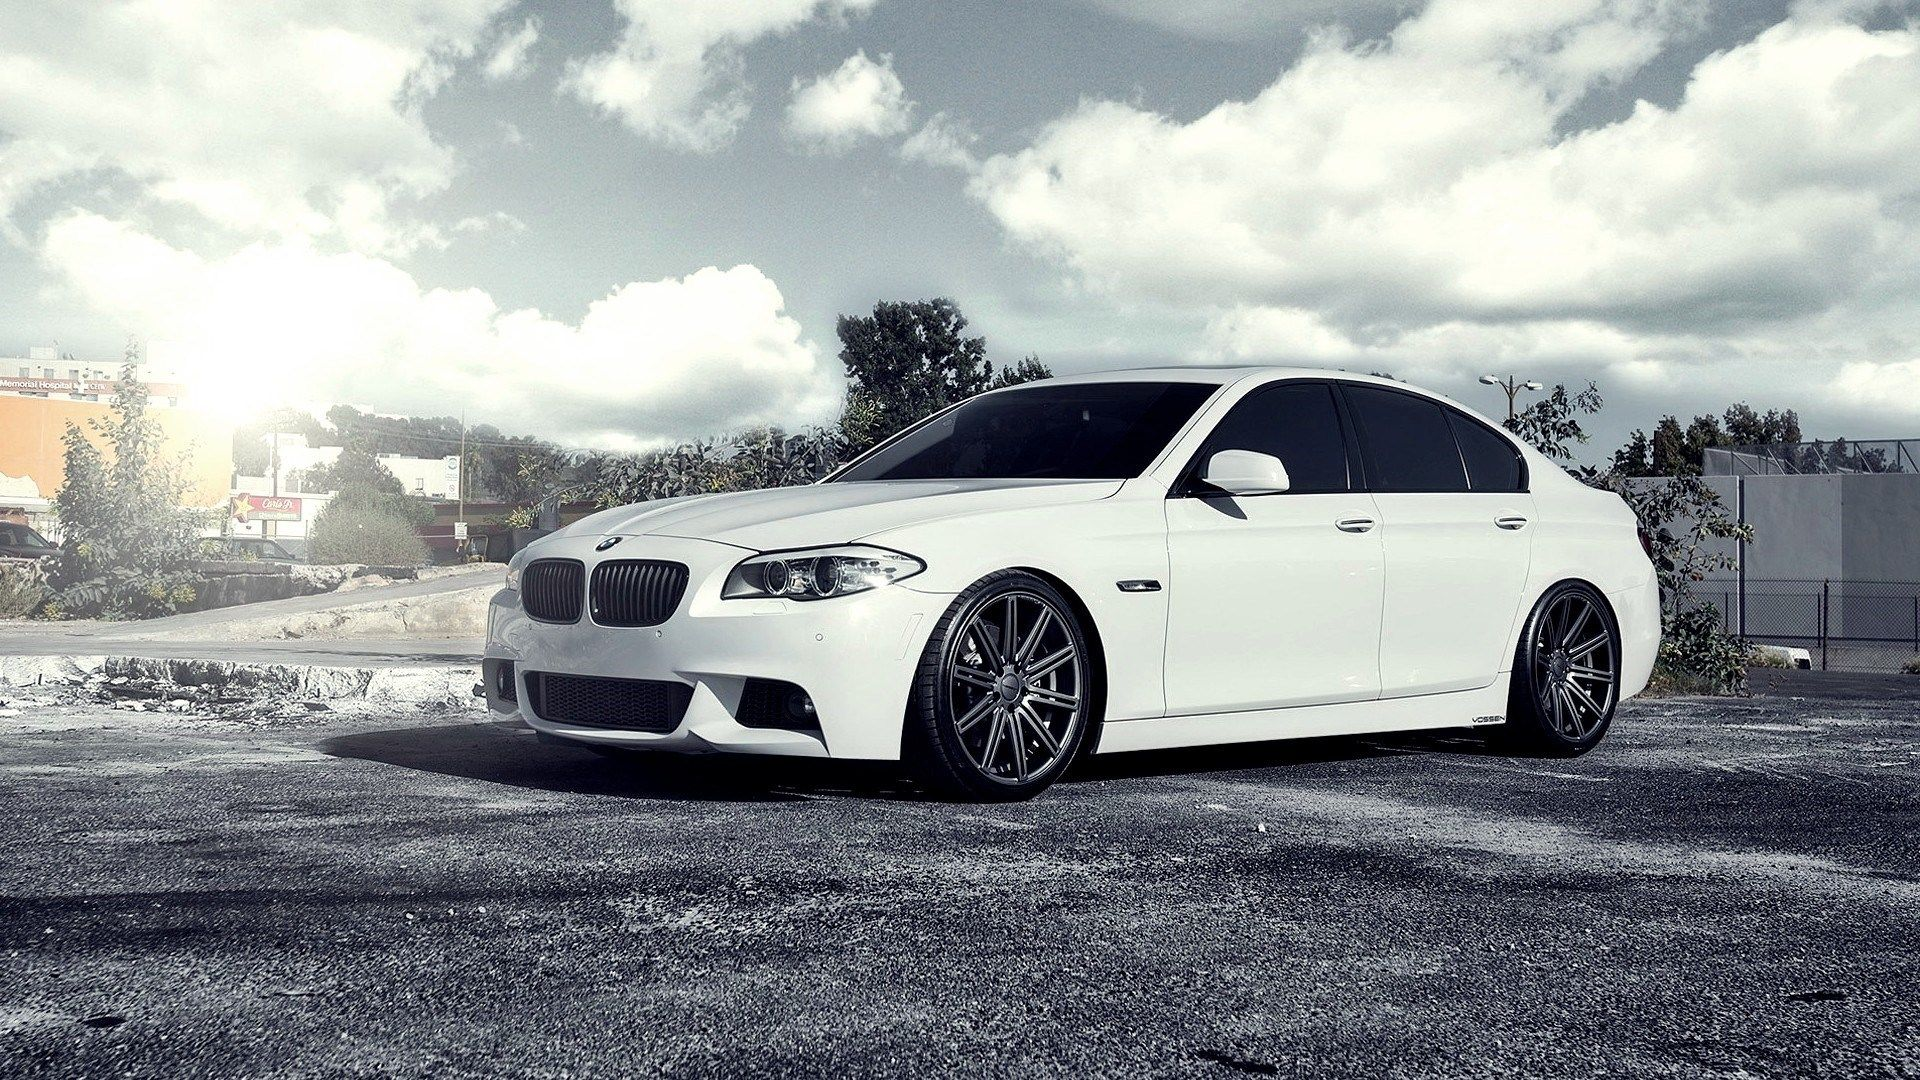 bmw 2015 5 series white. 2015 bmw 5 series car wallpaper bmw white